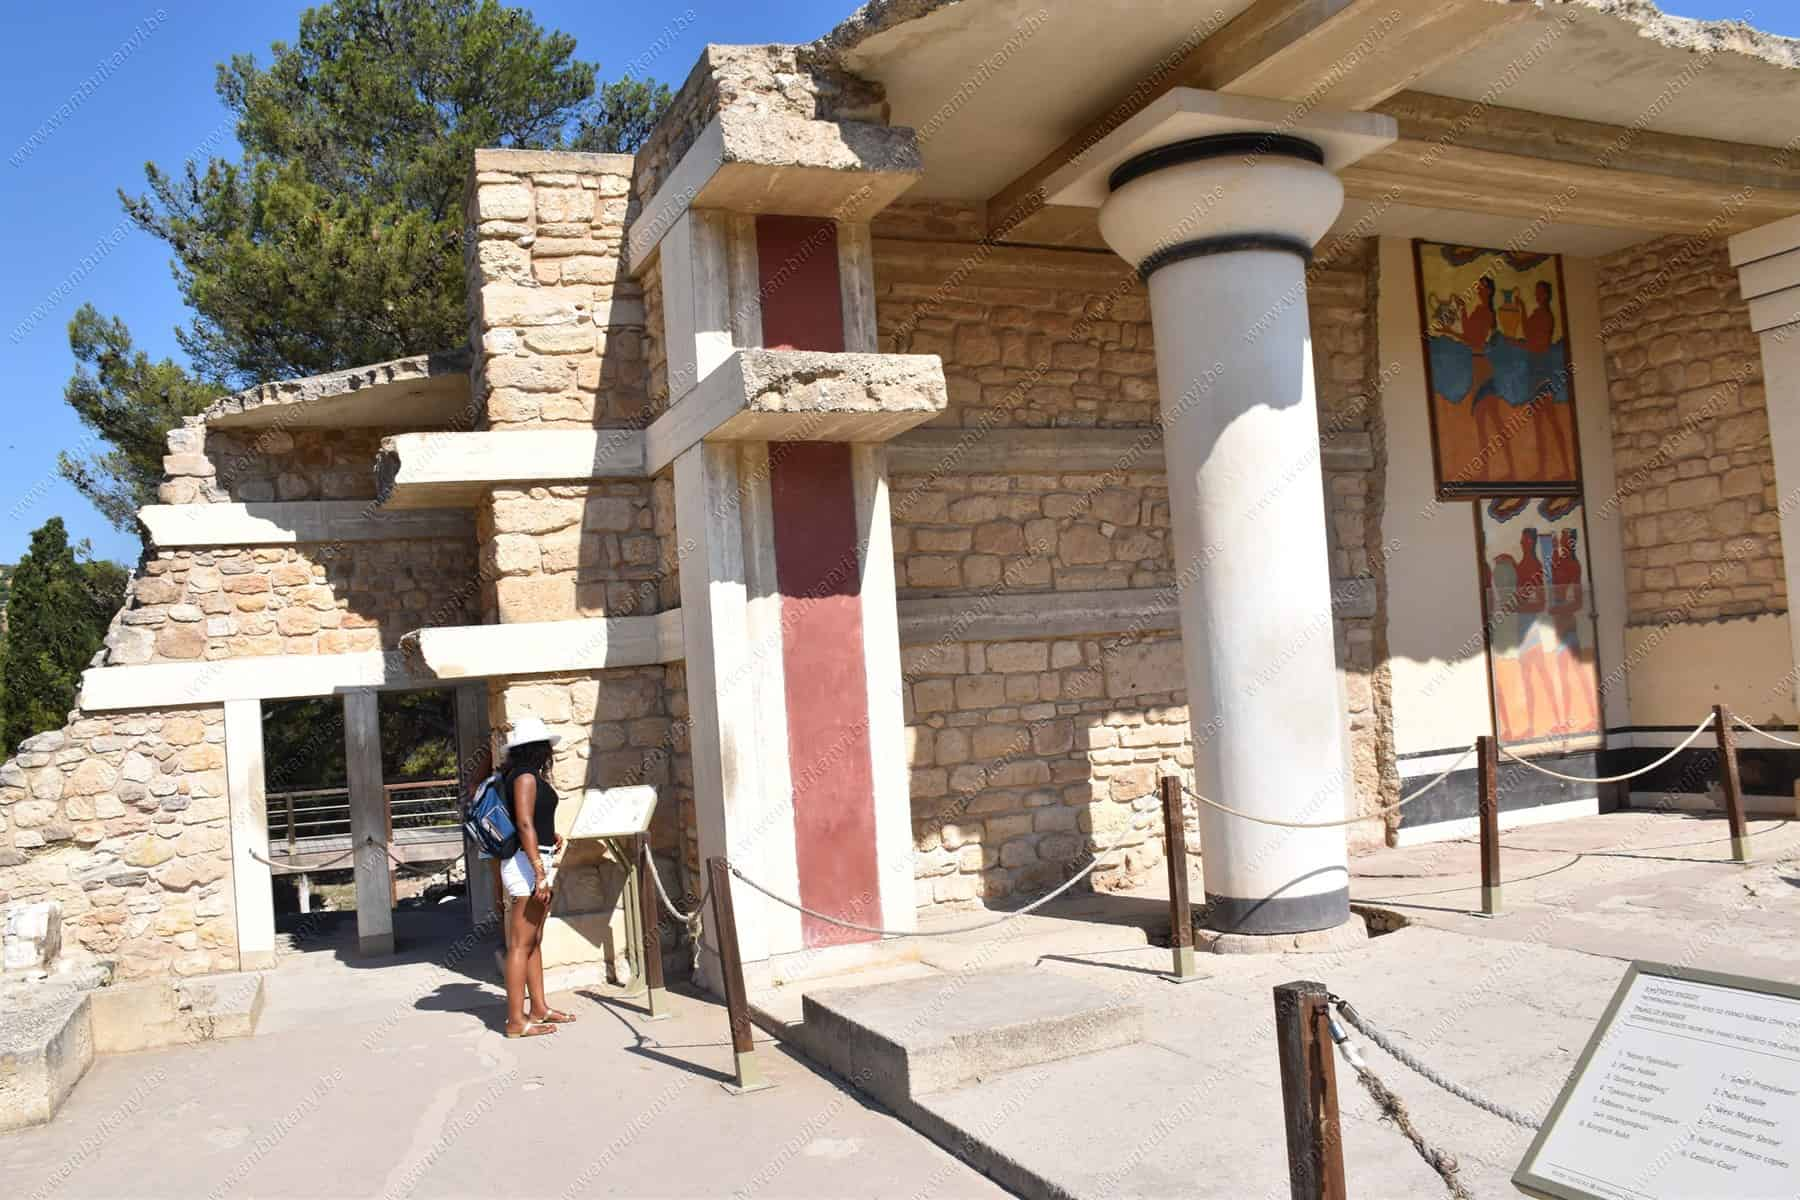 The Experience From The Palace Of Knossos, Crete